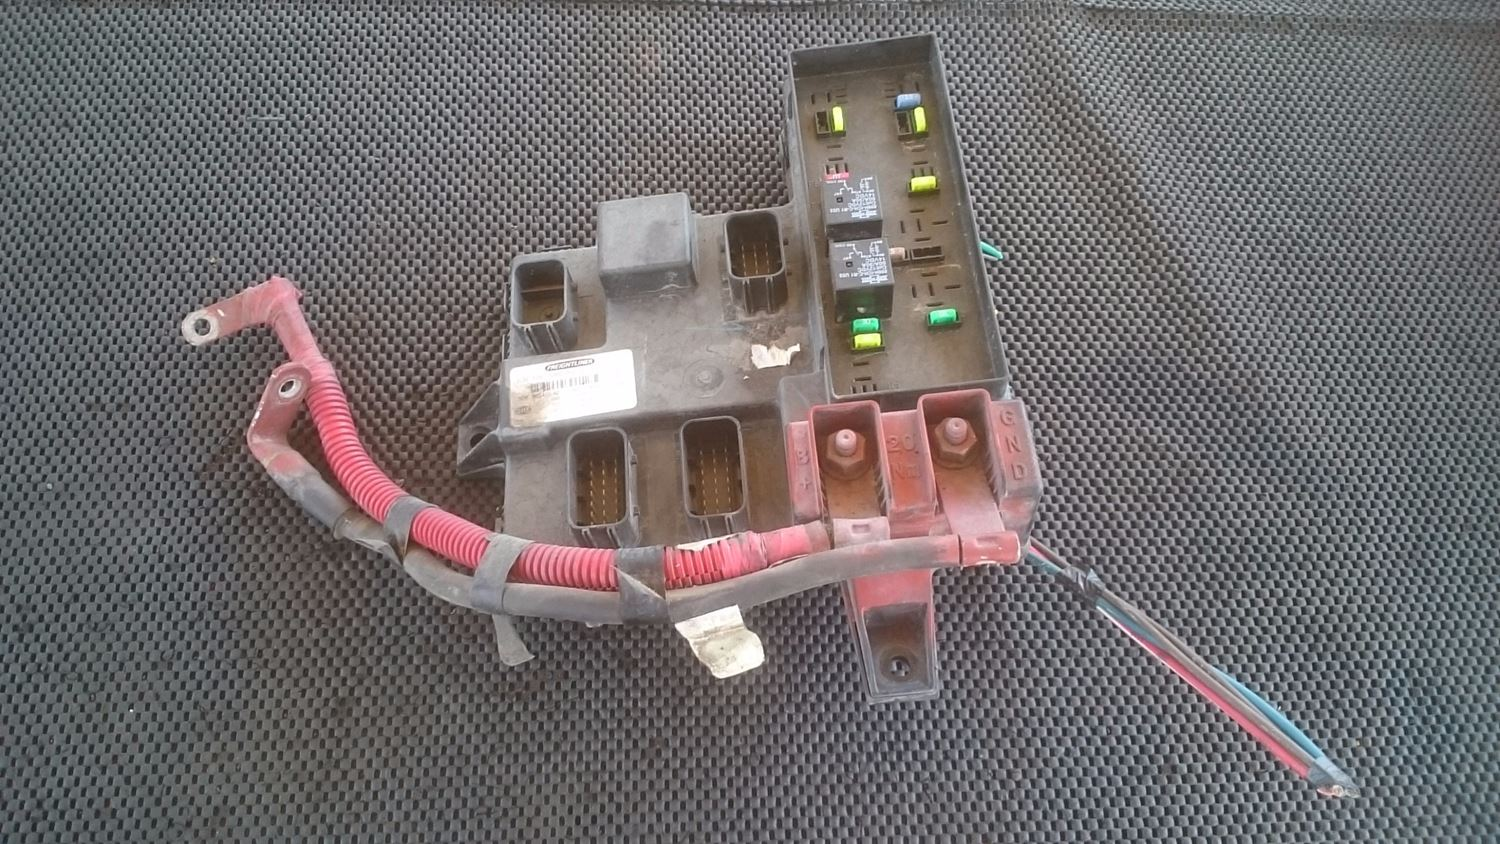 2014 N A N A Chassis Control Modules 38lEtS3n3jg6_f?h=60&w=100&crop=auto chassis control modules new and american truck chrome Freightliner Cascadia Headlight Fuse Location at readyjetset.co